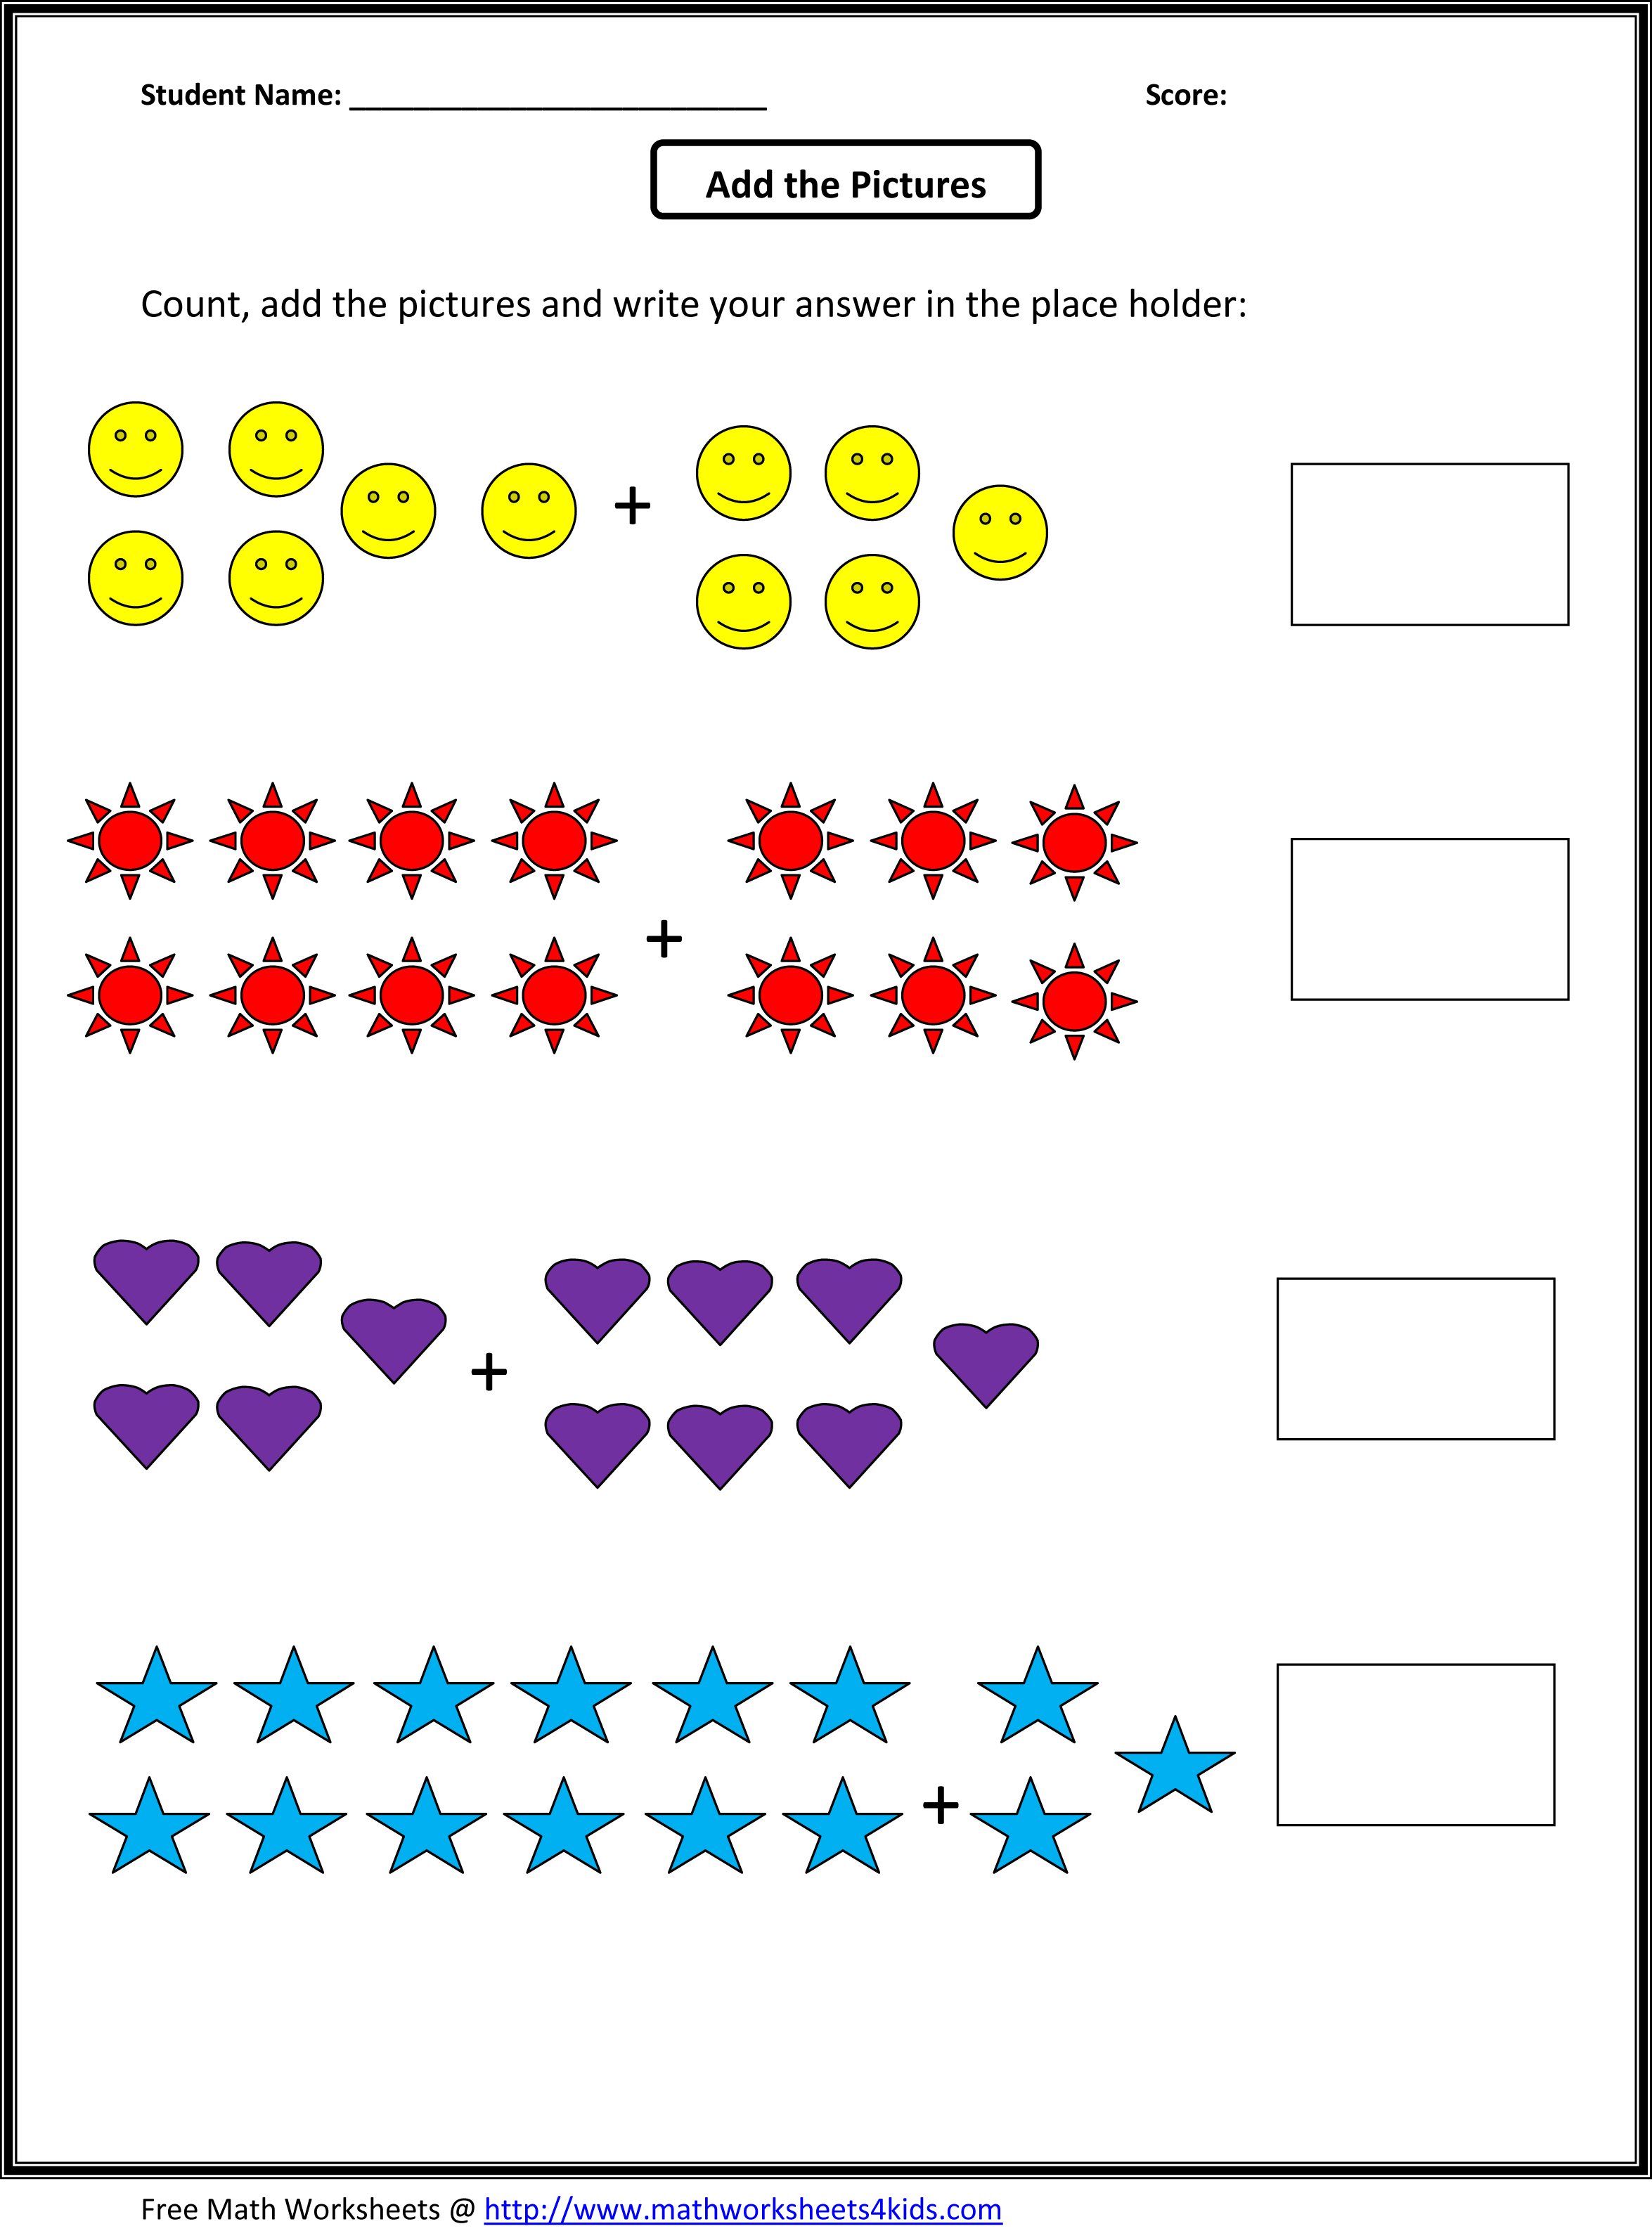 Weirdmailus  Gorgeous Grade  Maths Worksheet  Reocurent With Hot Math Worksheets For St Grade Free  Reocurent With Comely Year  English Comprehension Worksheets Also Free Word Scramble Worksheets In Addition Ninth Grade Grammar Worksheets And Peer Relationships Worksheets As Well As Worksheet Friction Additionally When  Vowels Go Walking Worksheets From Reocurentcom With Weirdmailus  Hot Grade  Maths Worksheet  Reocurent With Comely Math Worksheets For St Grade Free  Reocurent And Gorgeous Year  English Comprehension Worksheets Also Free Word Scramble Worksheets In Addition Ninth Grade Grammar Worksheets From Reocurentcom